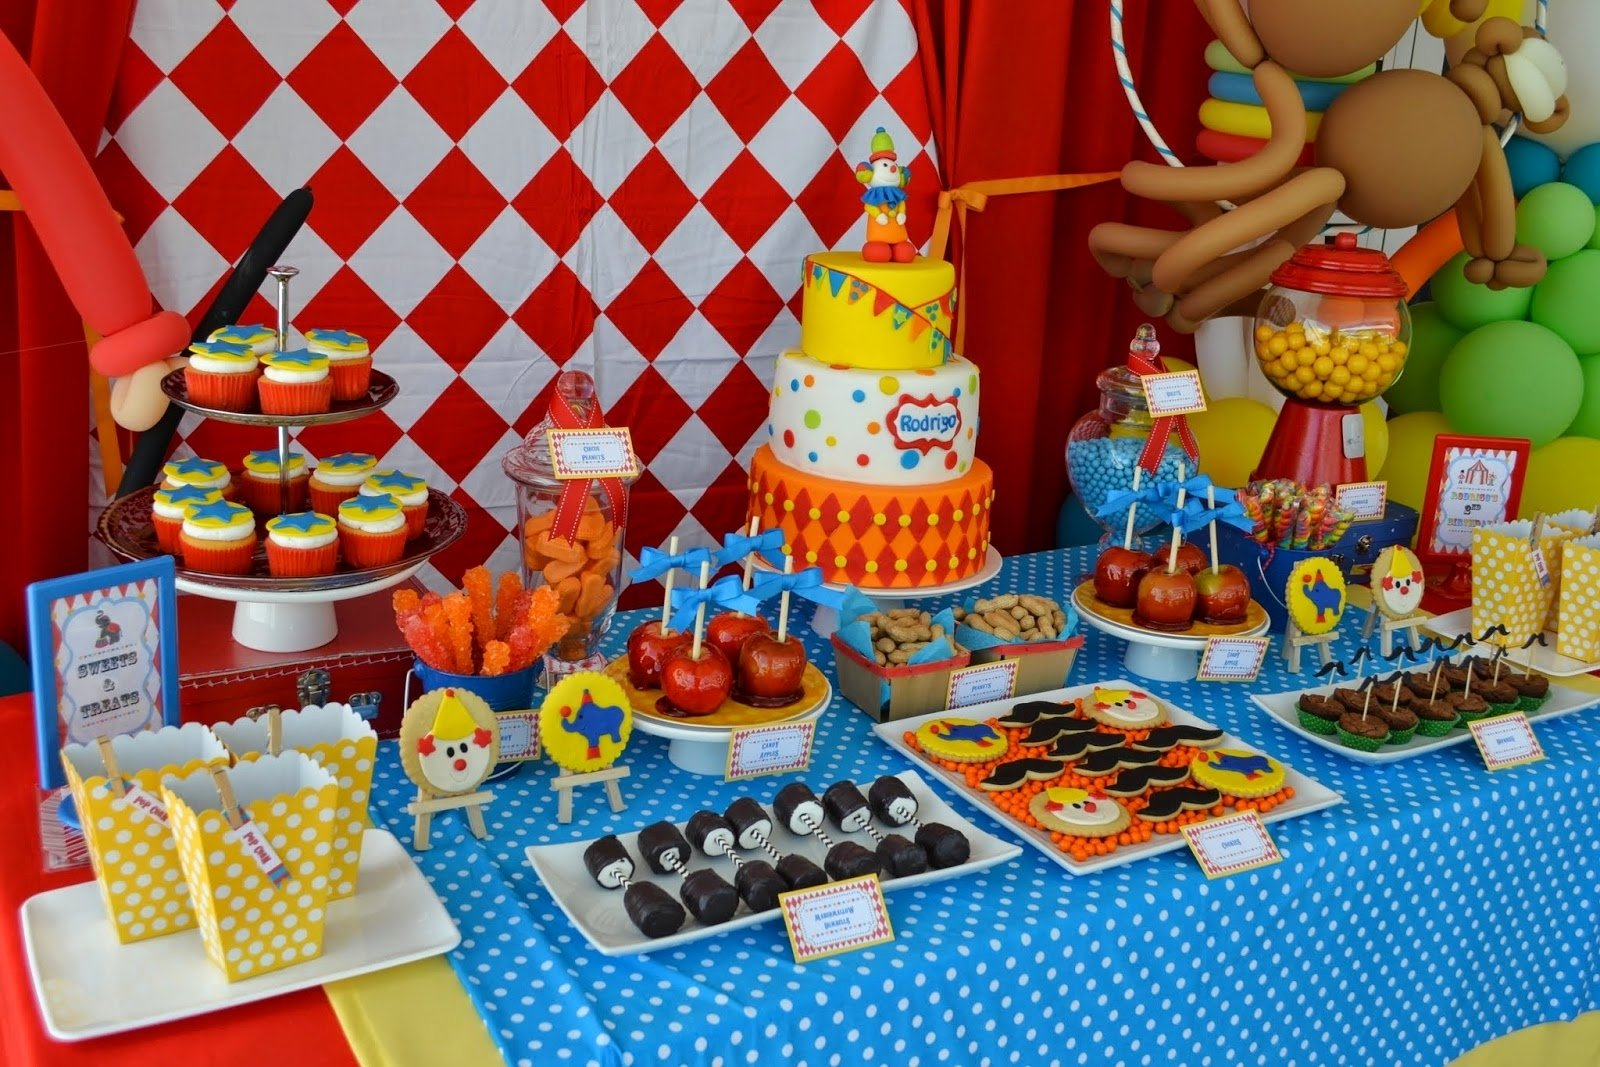 10 Stylish Ideas For Boys Birthday Party awesome birthday party ideas for boys 6